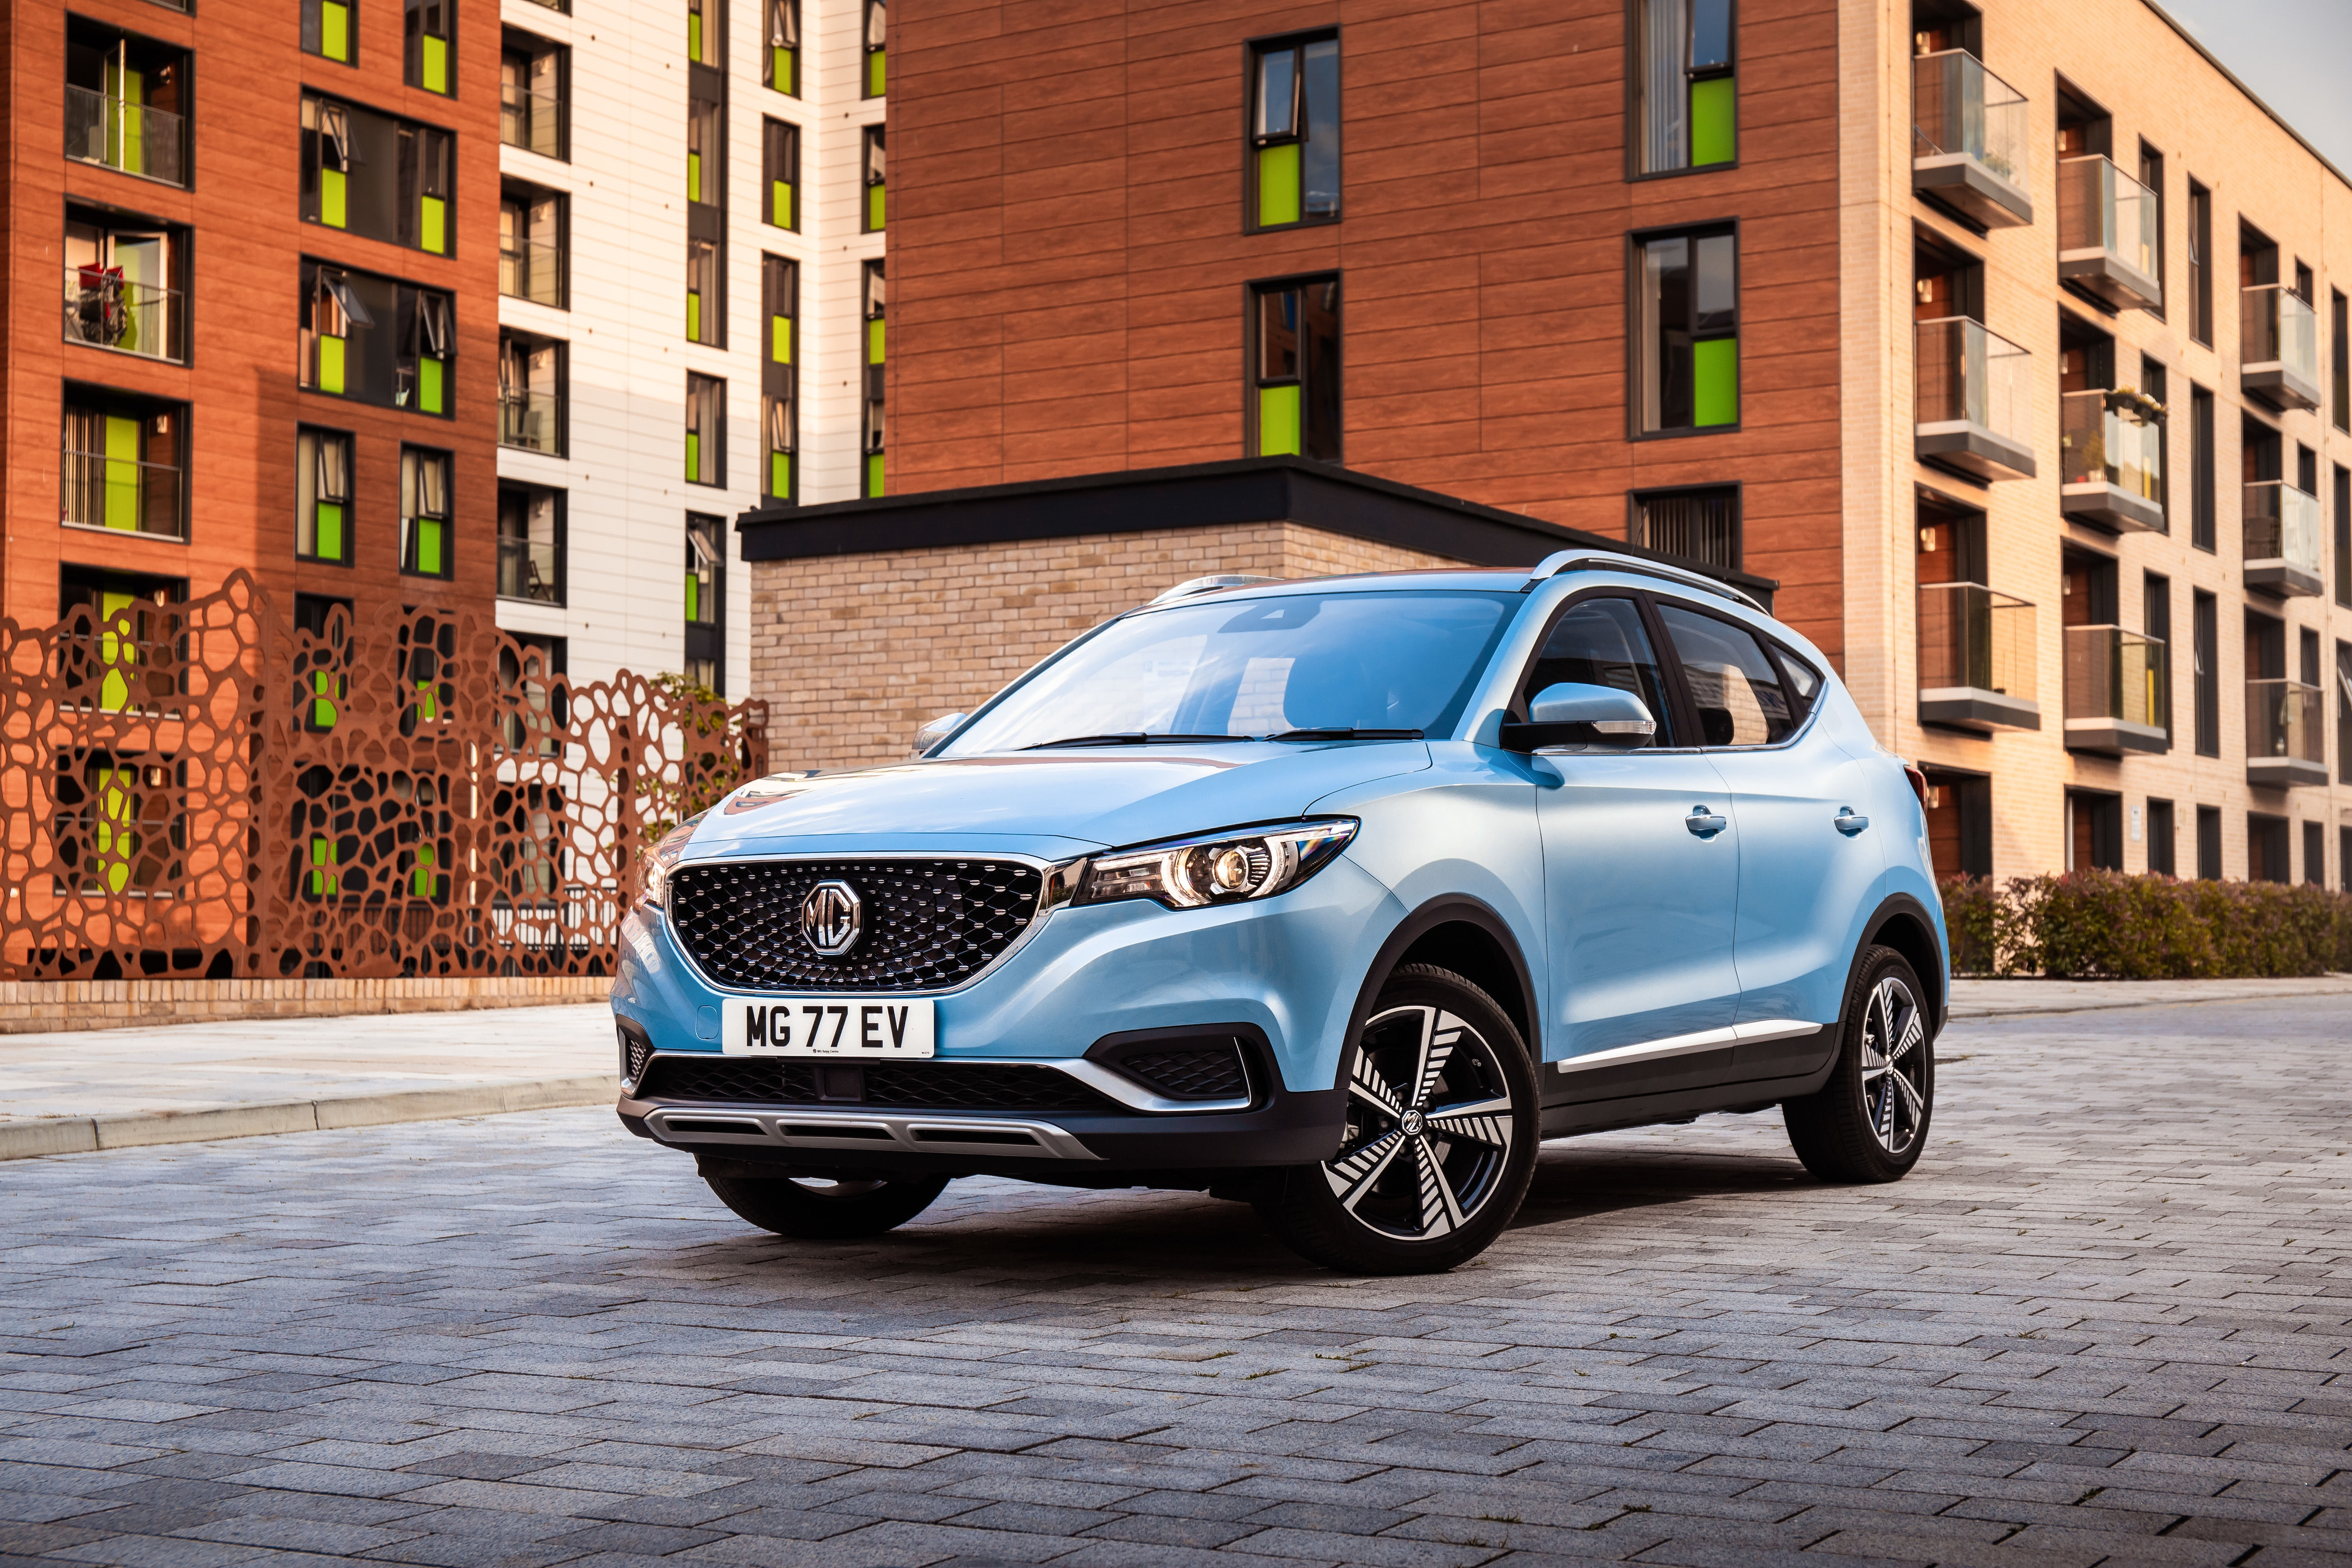 MG Motor recently announced of apartnership with Exicomto reuse batteries once they have gone through their entire life cycle inside the ZS. (Photo courtesy: mg.co.uk)